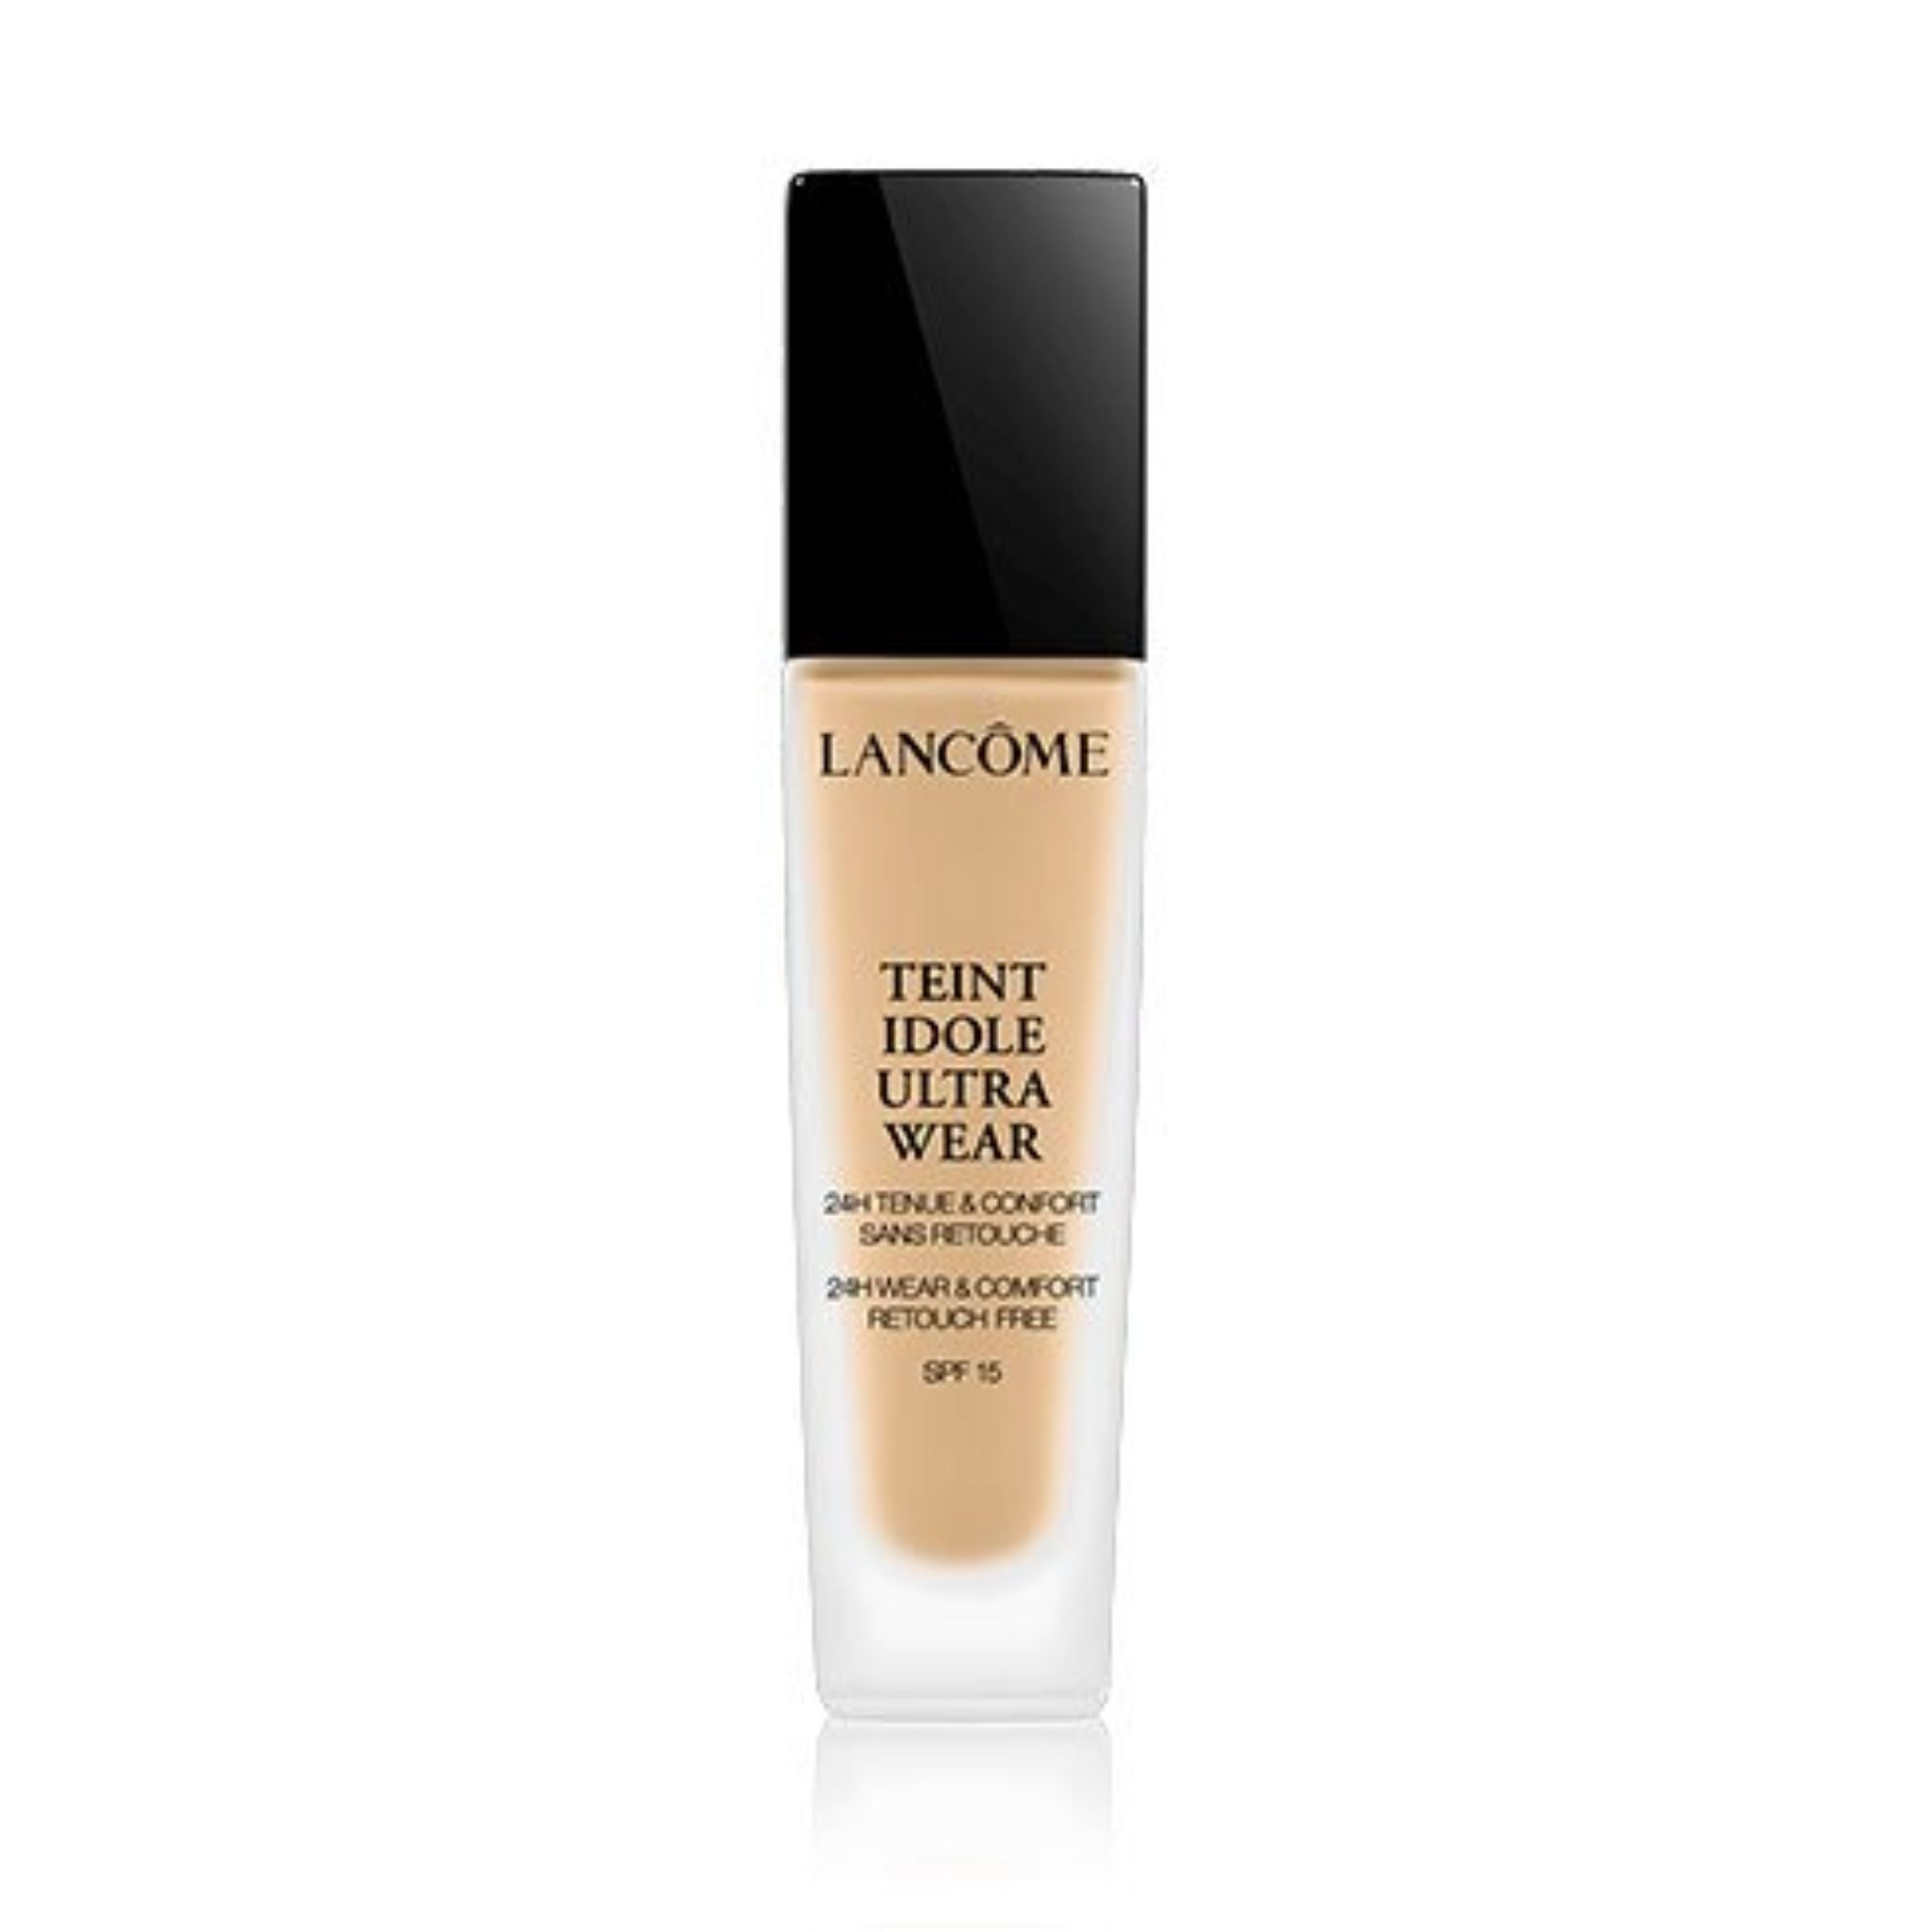 Lancome Teint Idole Ultra Wear Foundation